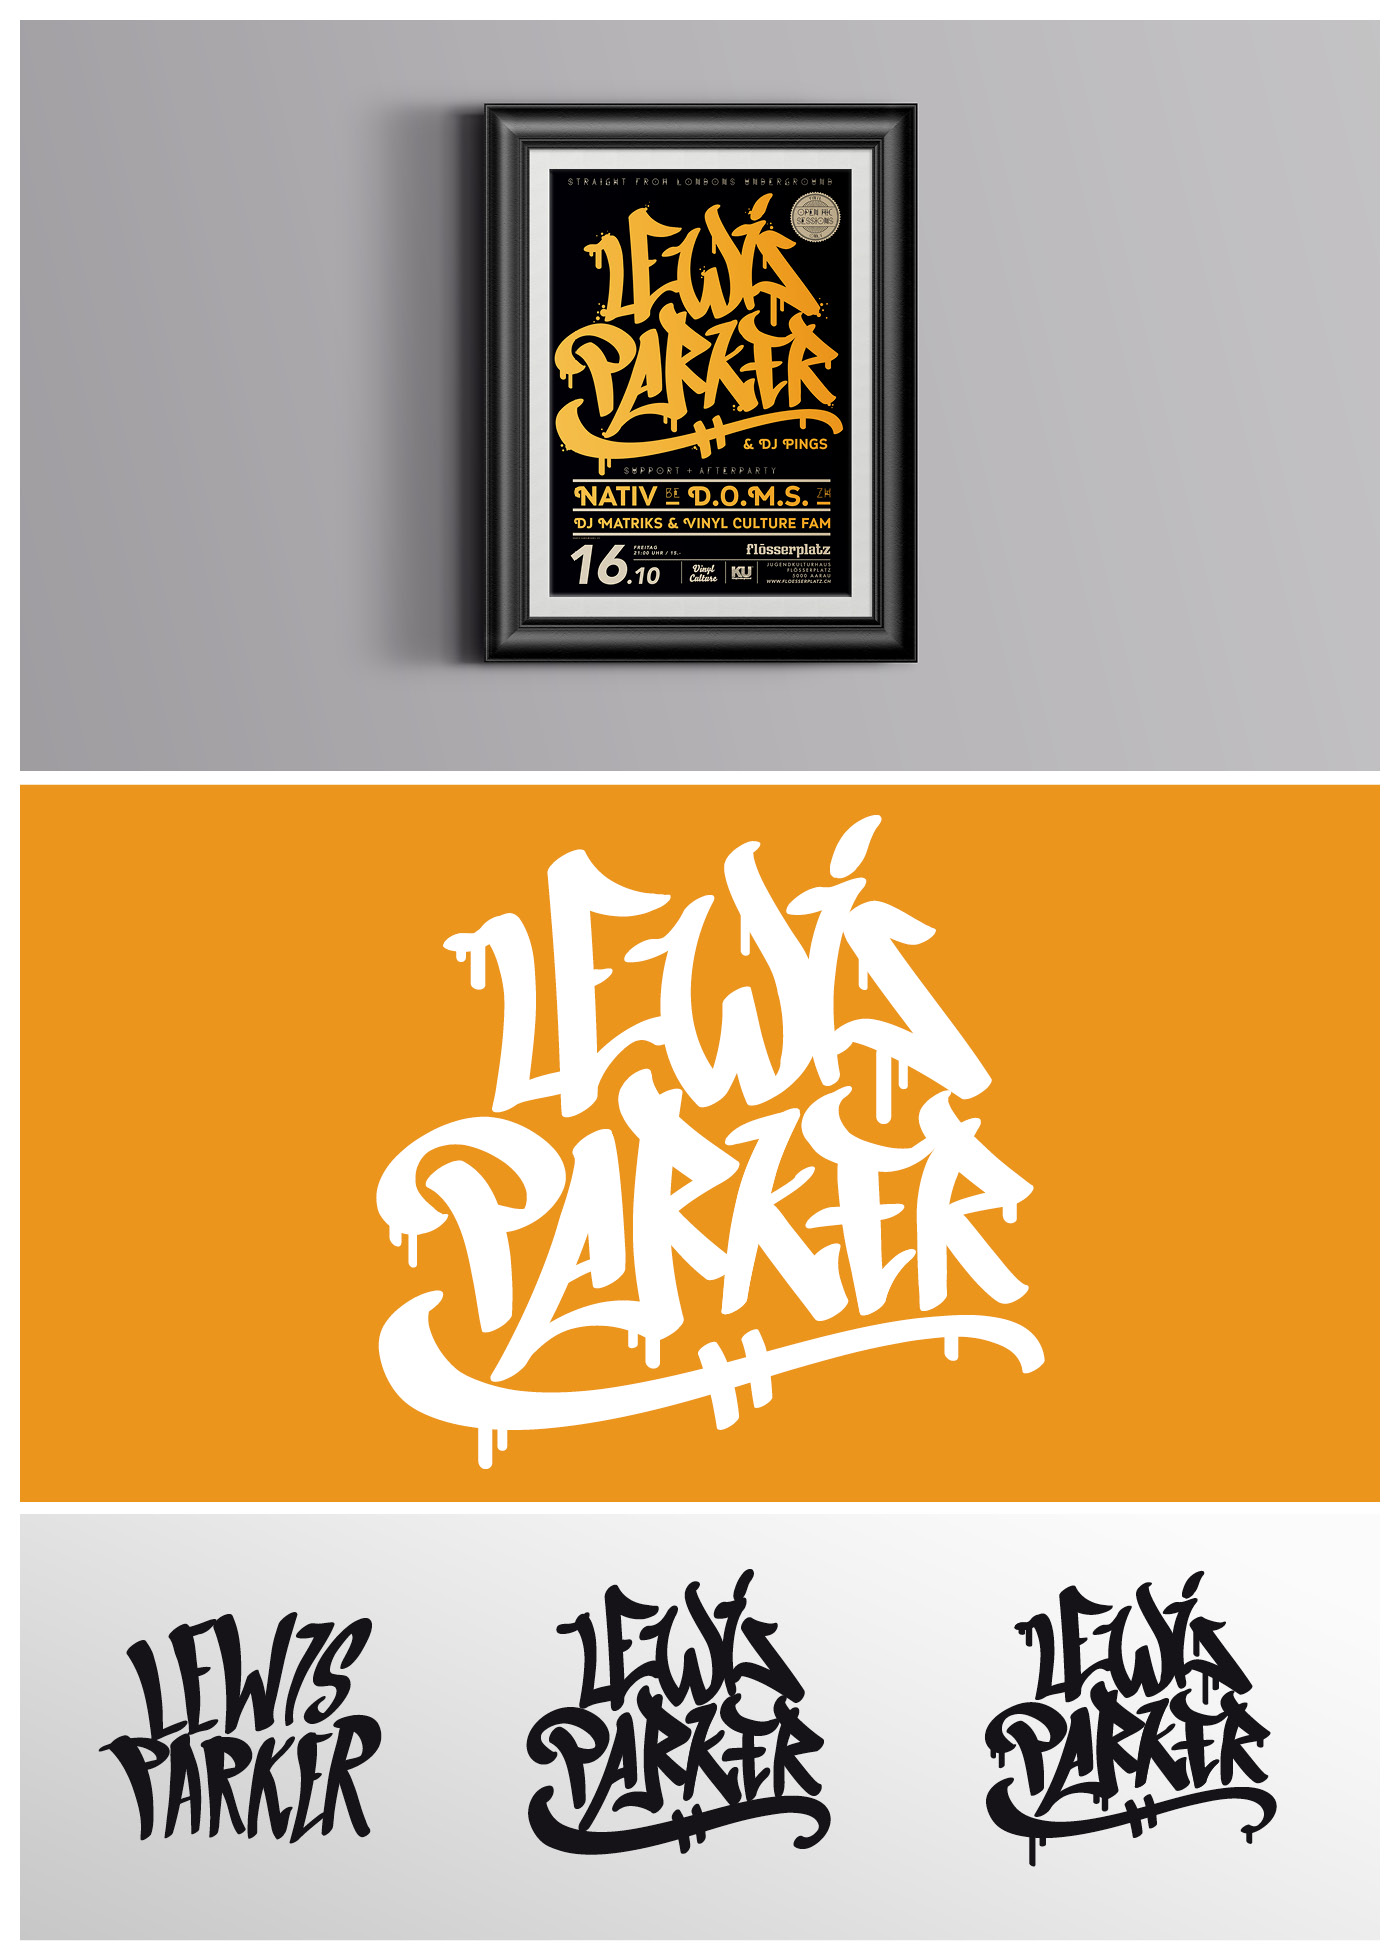 Poster for Lewis Parker, Handlettering, Graffiti, Tag